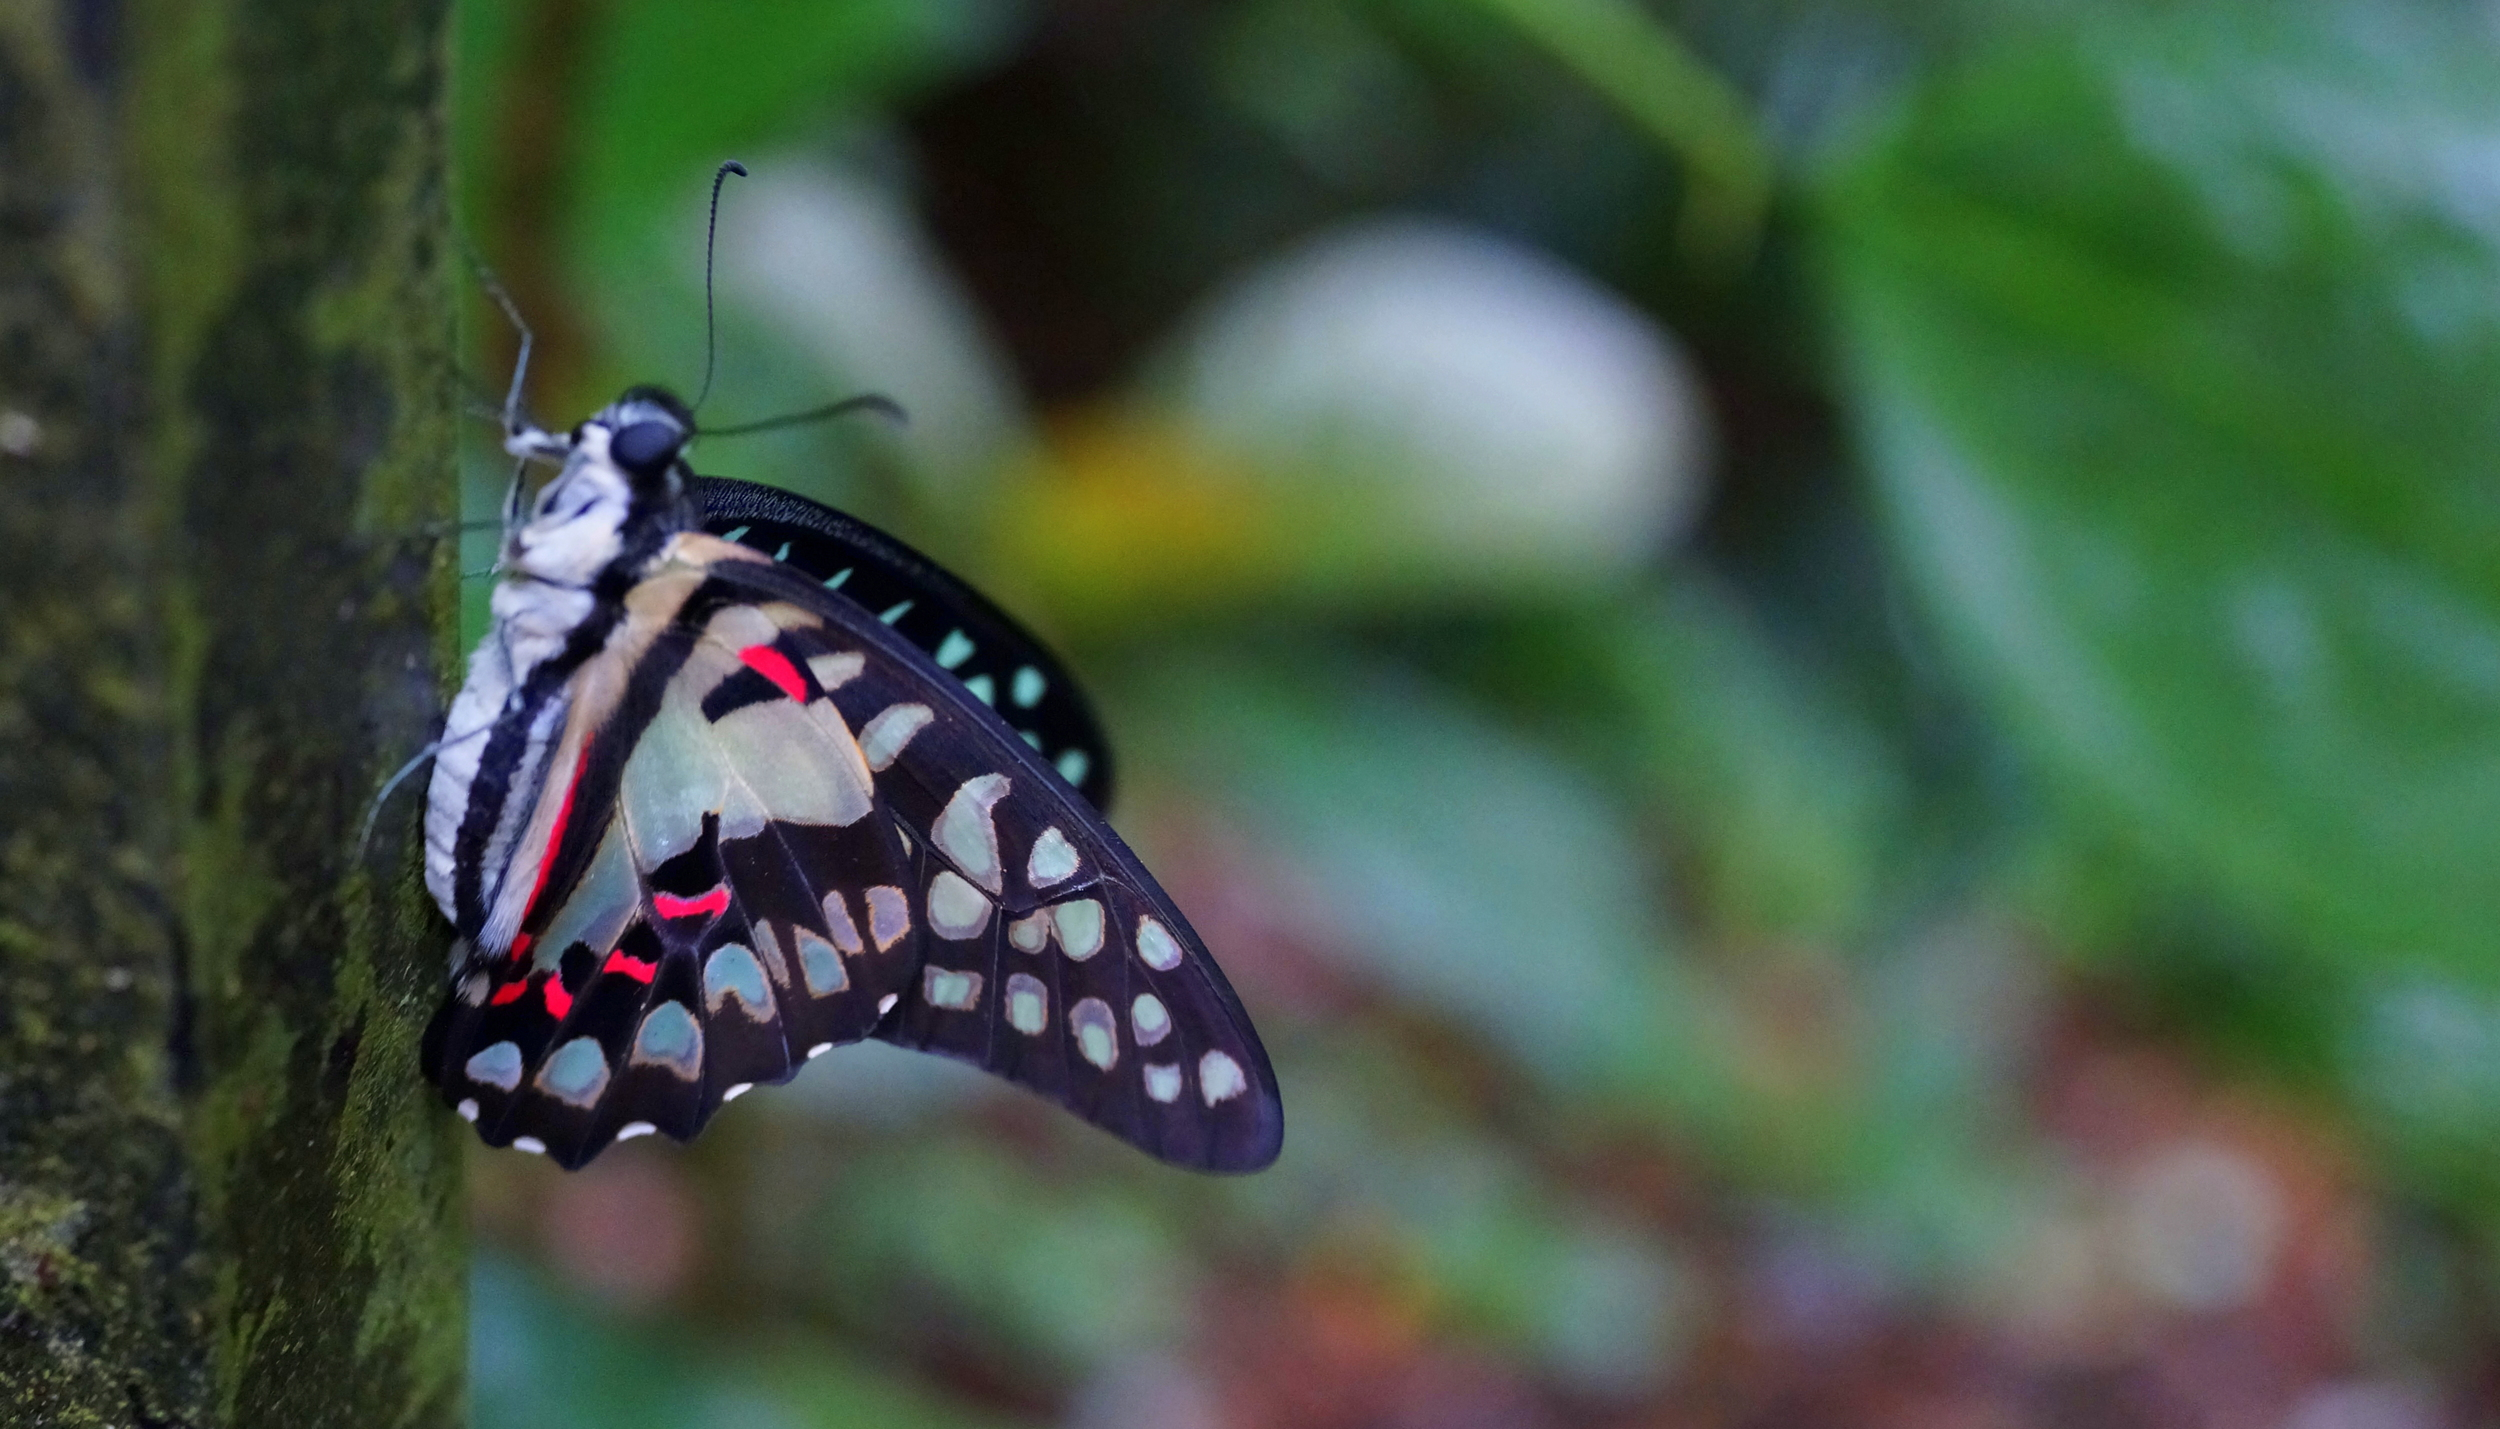 For me anyway, a rare butterfly shot